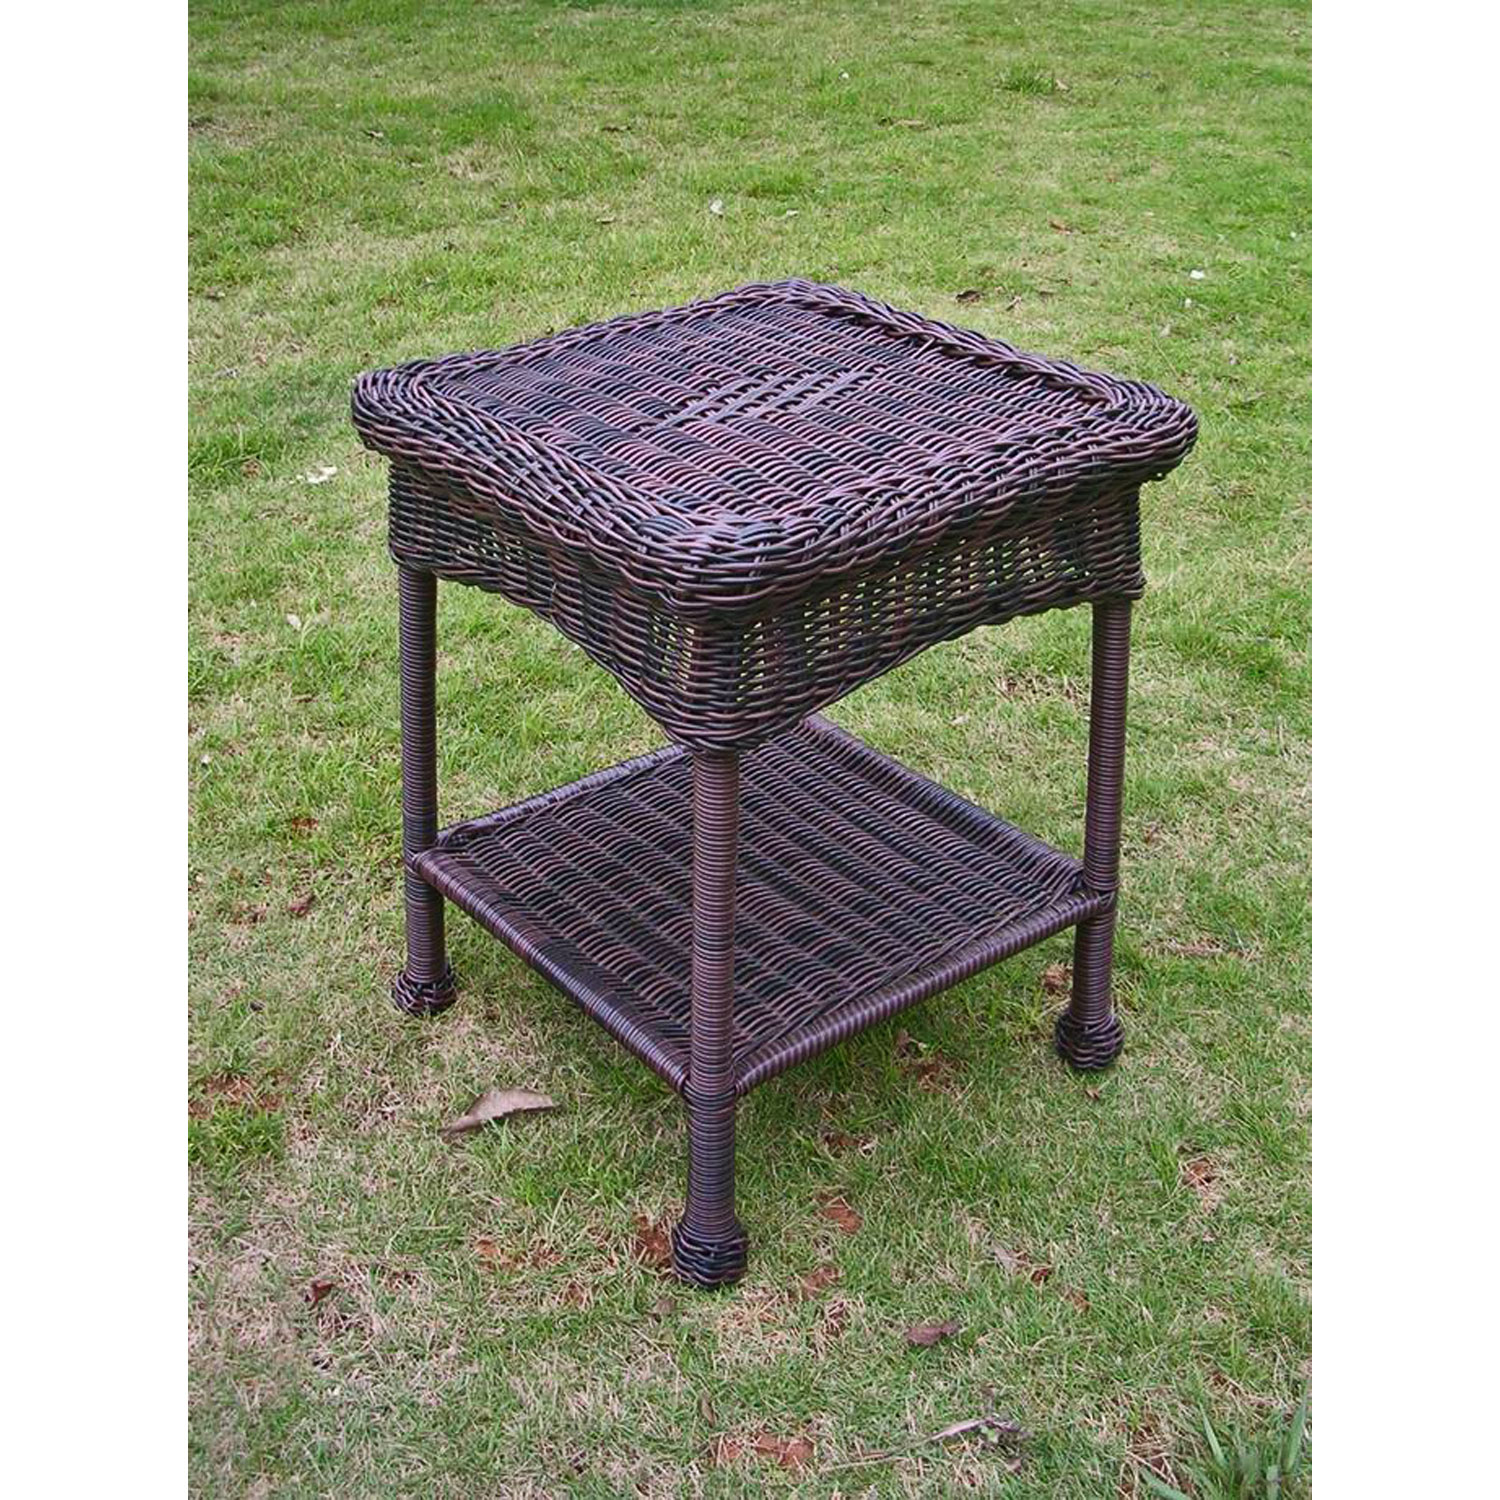 international caravan pvc resin and steel outdoor side table wicker antique pecan bar furniture contemporary dining large covers height legs wood armchairs for small spaces narrow